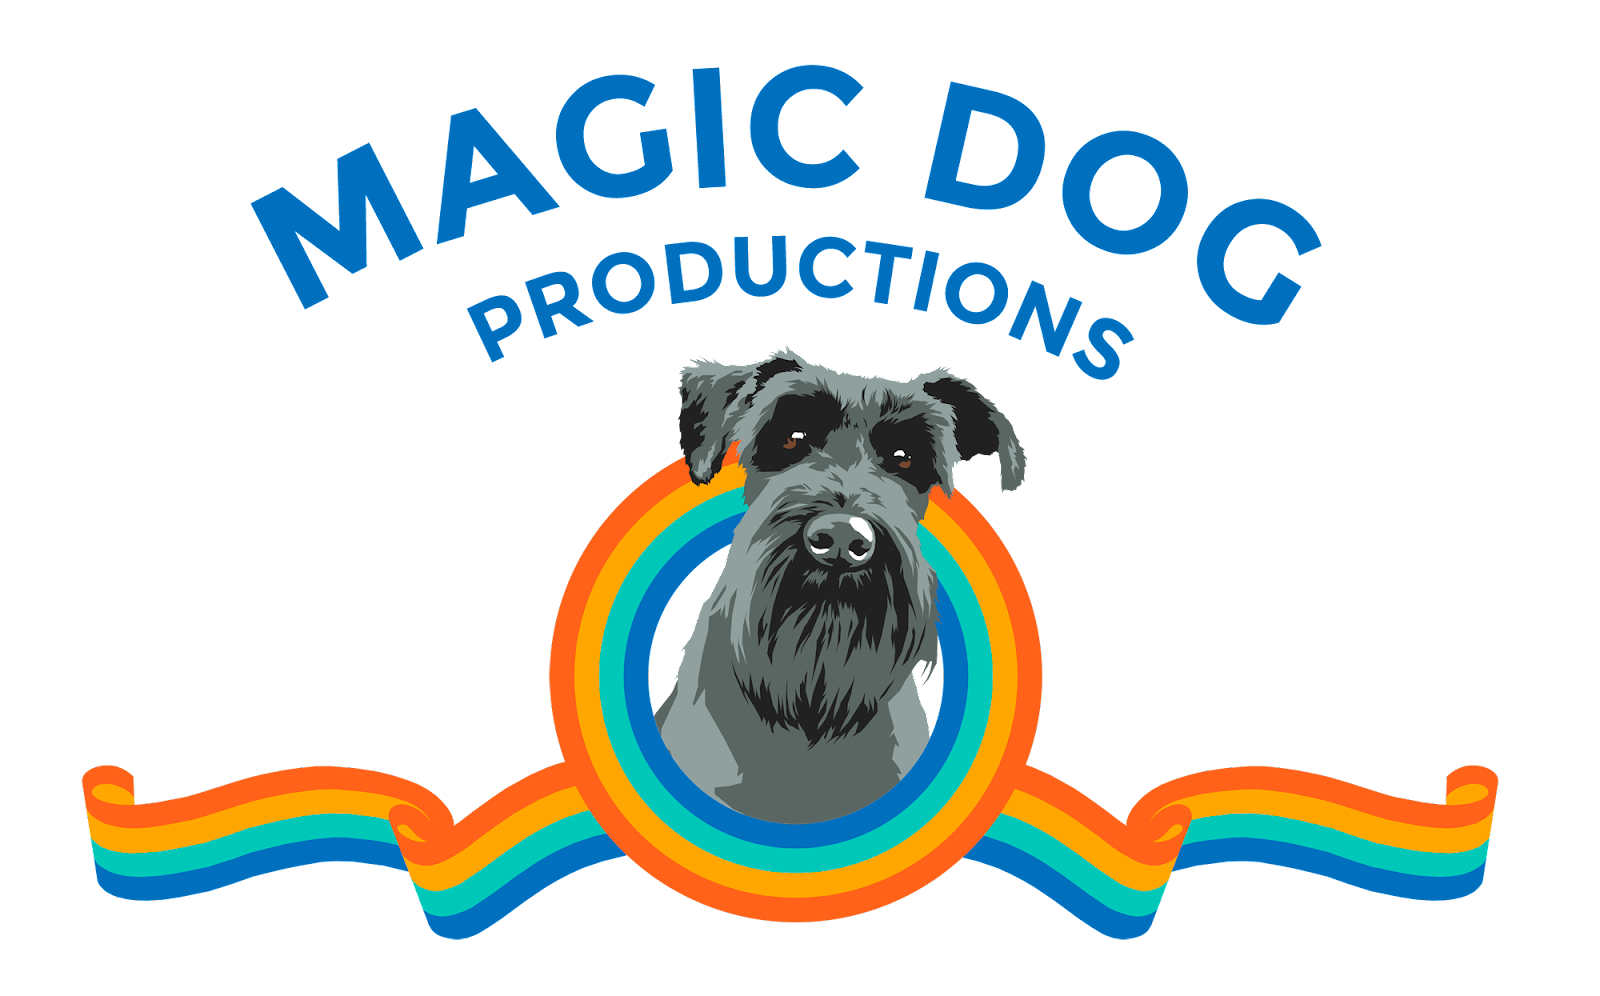 magic_dog_mgm_version.png